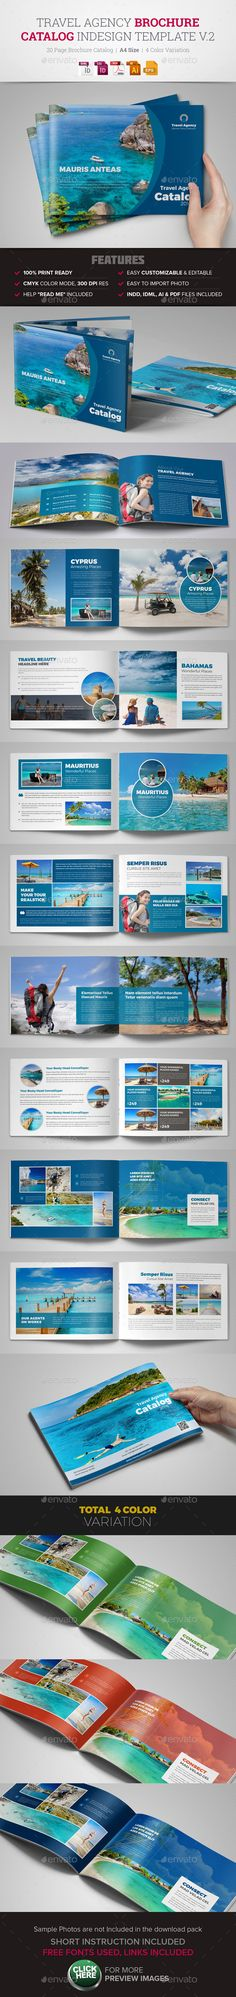 Travel Agency Brochure Catalog InDesign 2  InDesign Template • Download ➝ https://graphicriver.net/item/travel-agency-brochure-catalog-indesign-2/10511731?ref=pxcr